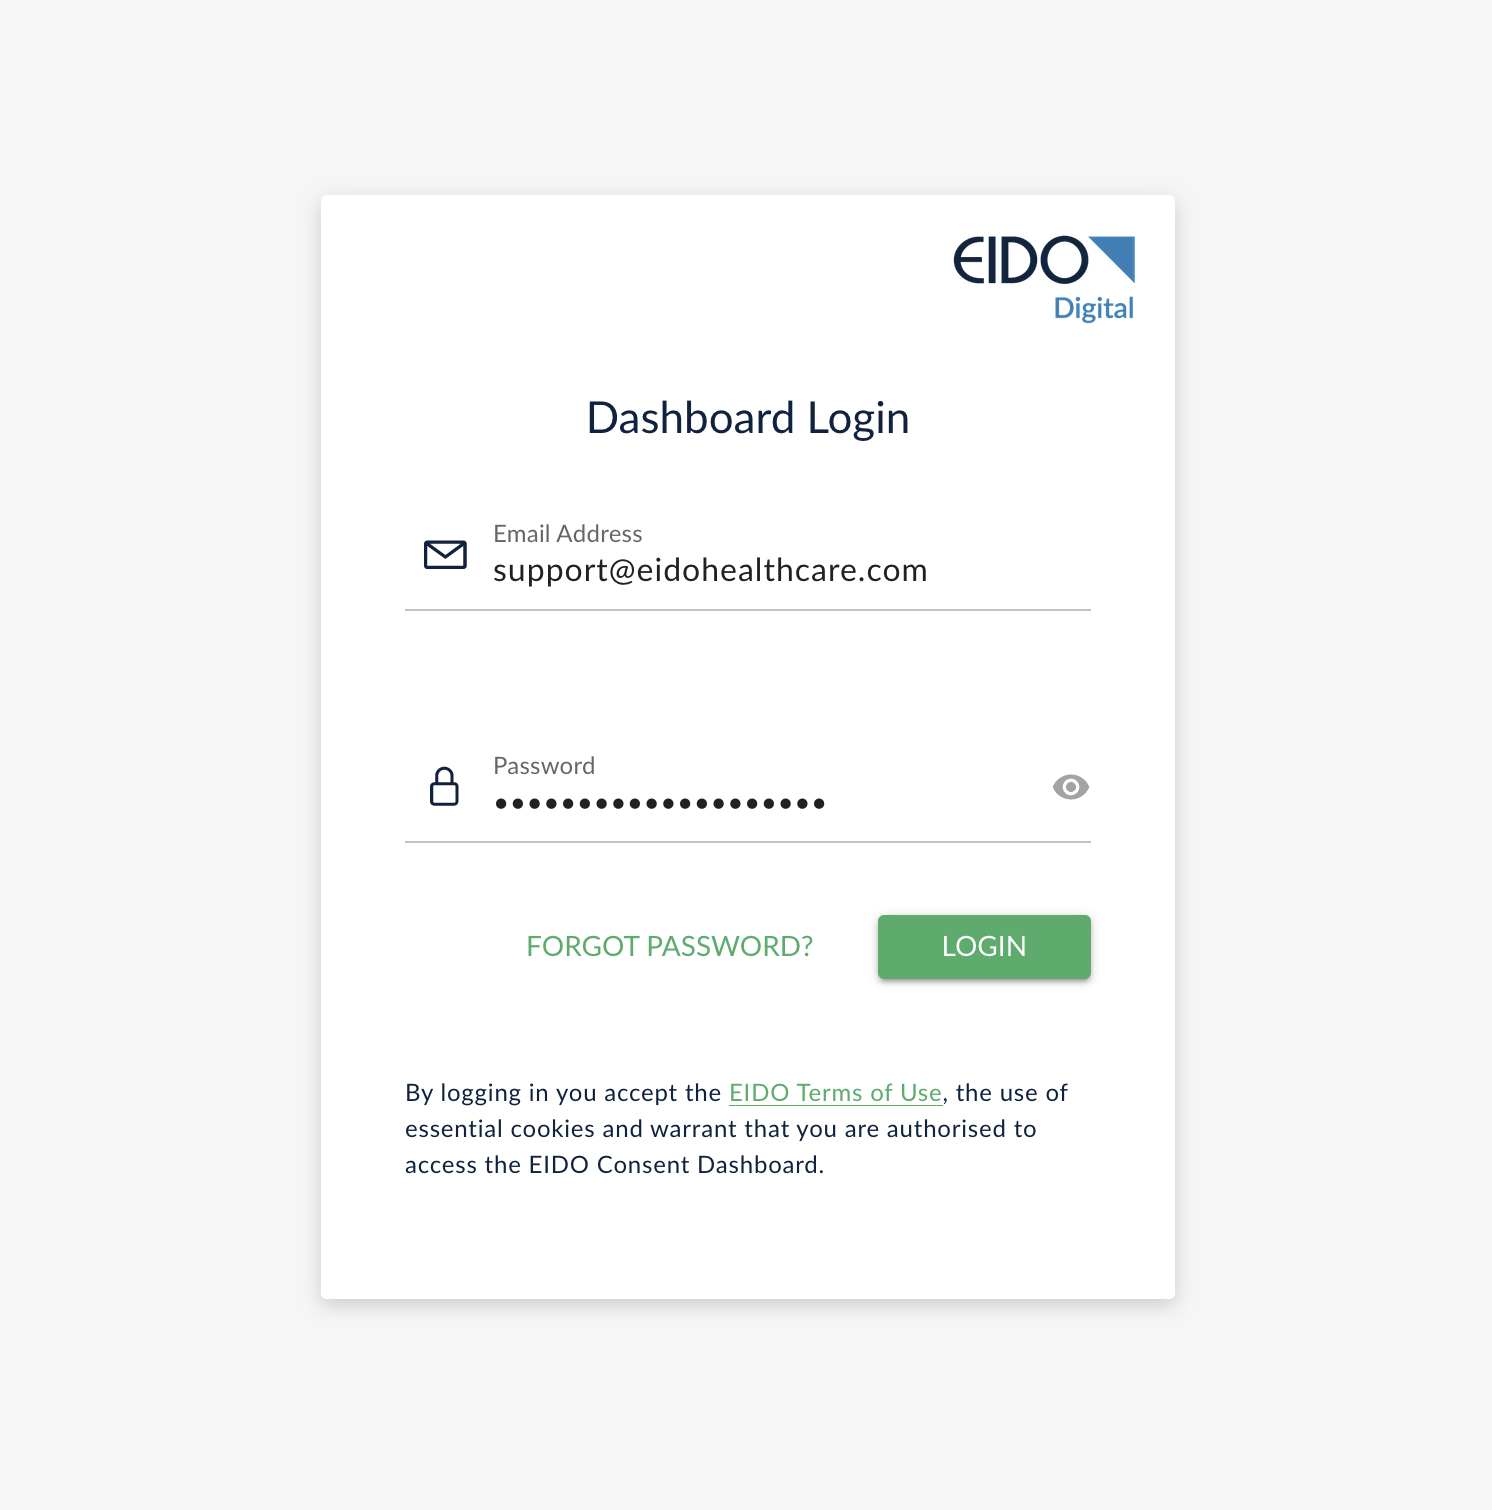 login page for email address and password